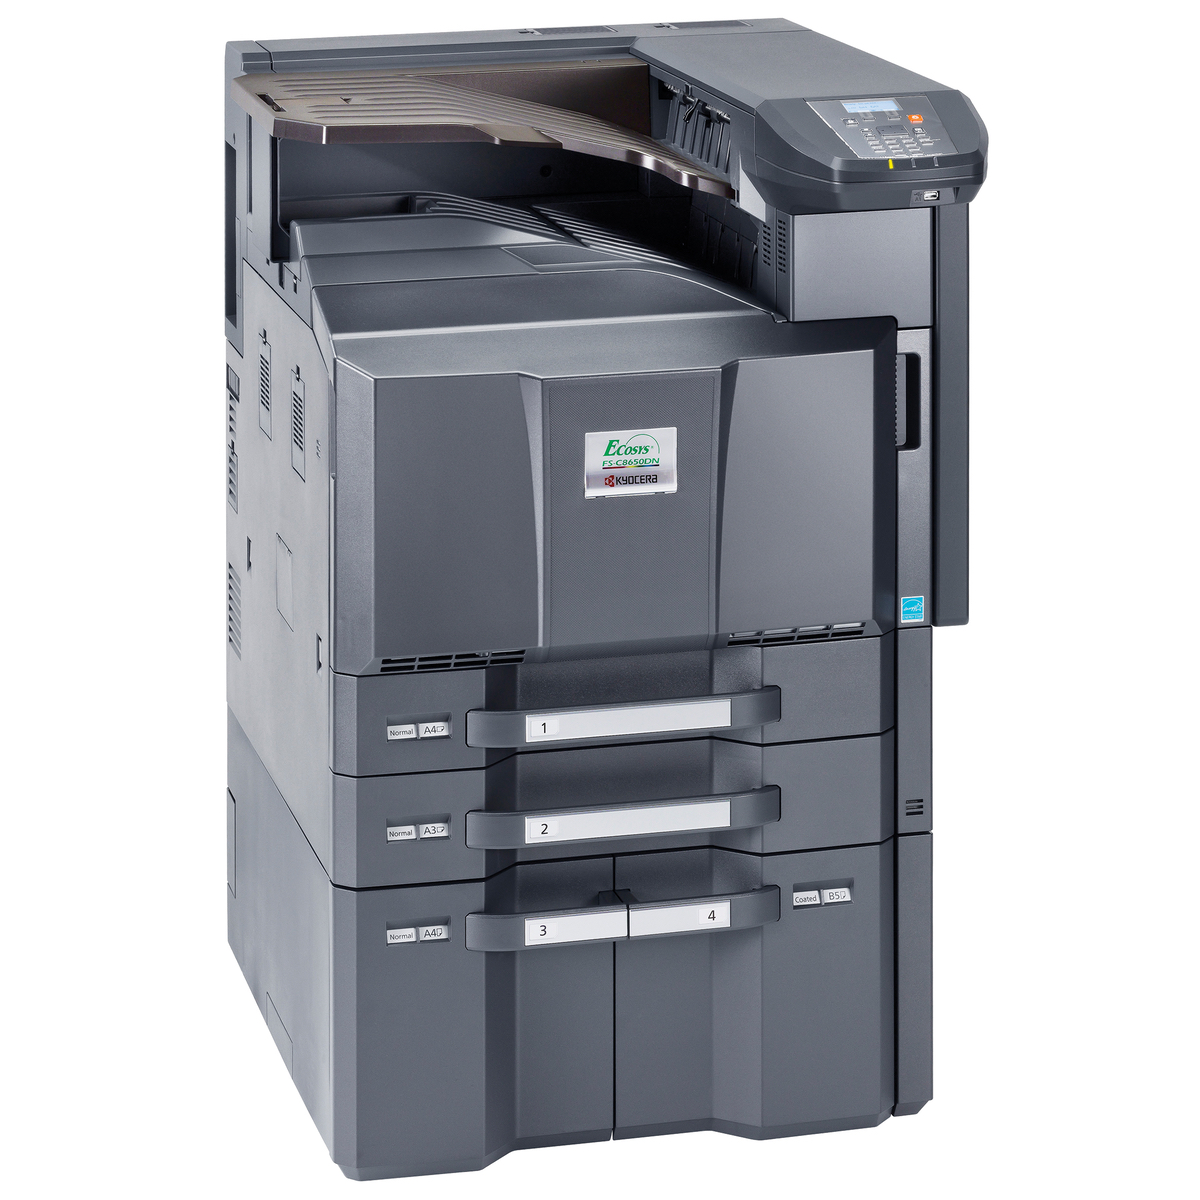 KYOCERA ECOSYS FS-C8650DN KX PRINTER DRIVERS FOR WINDOWS 10